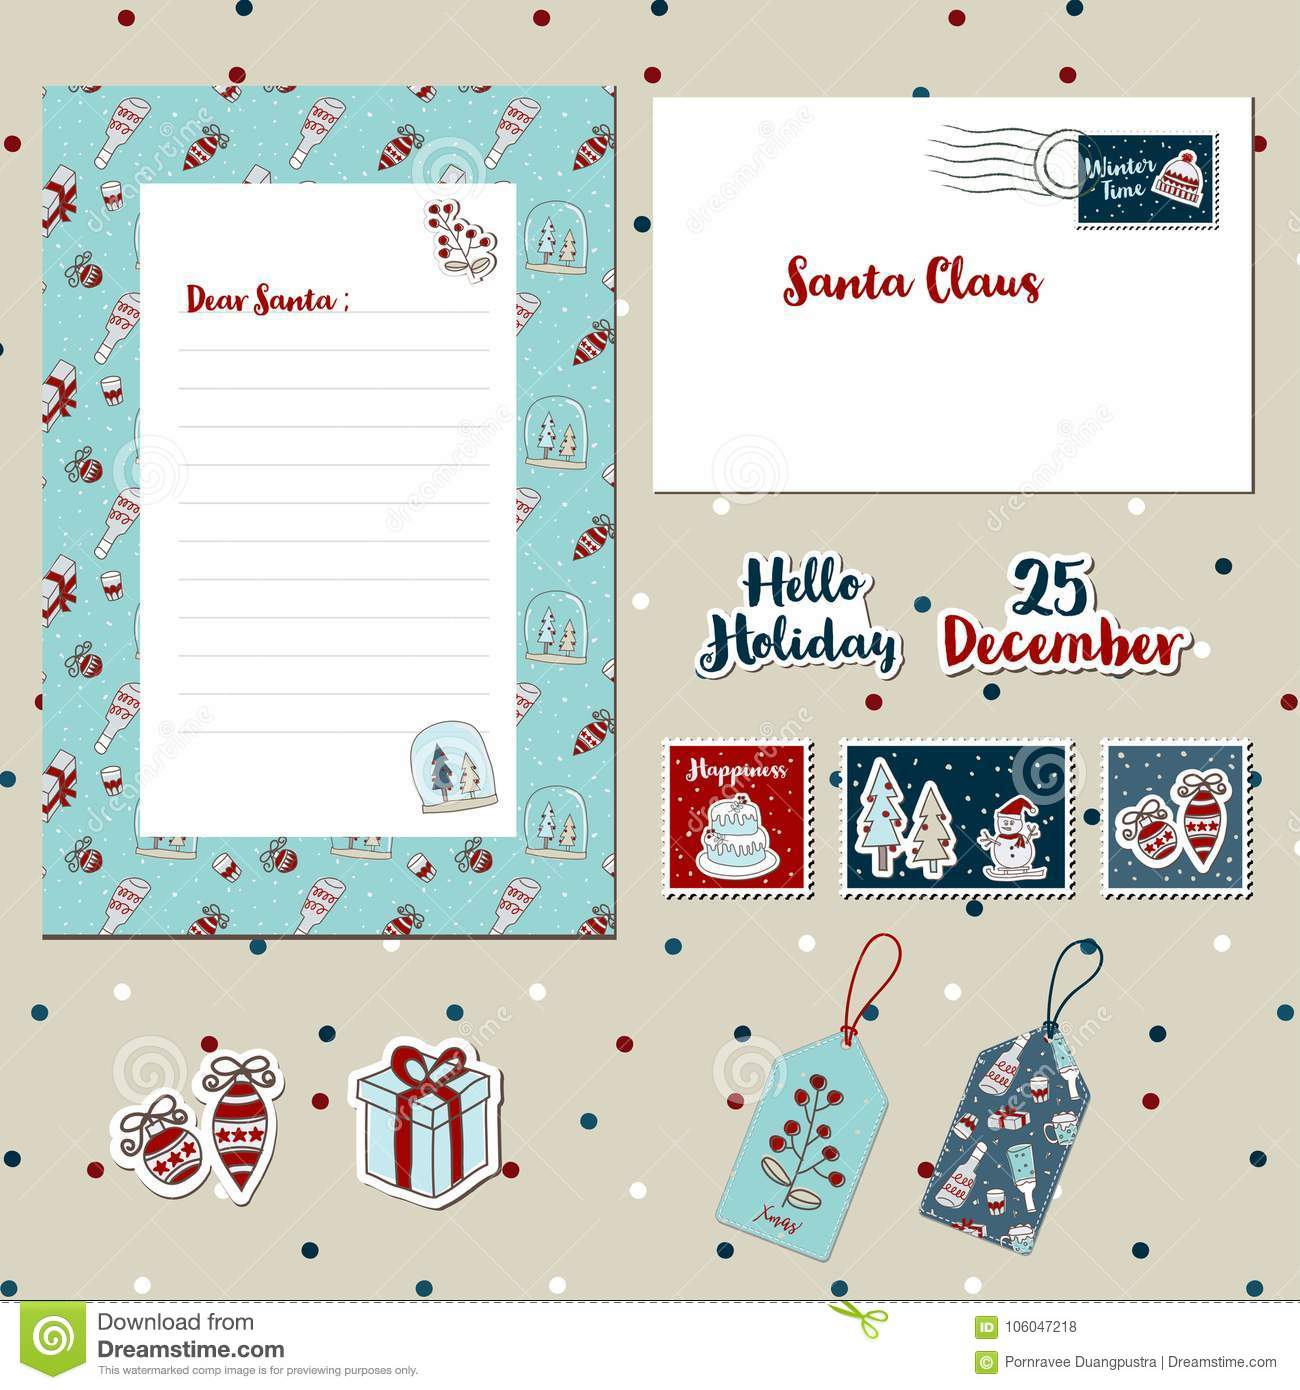 a set of merry christmas santa cute letter envelope templates scrapbook stamps stickers label tags with text snowman tree cake snowfall